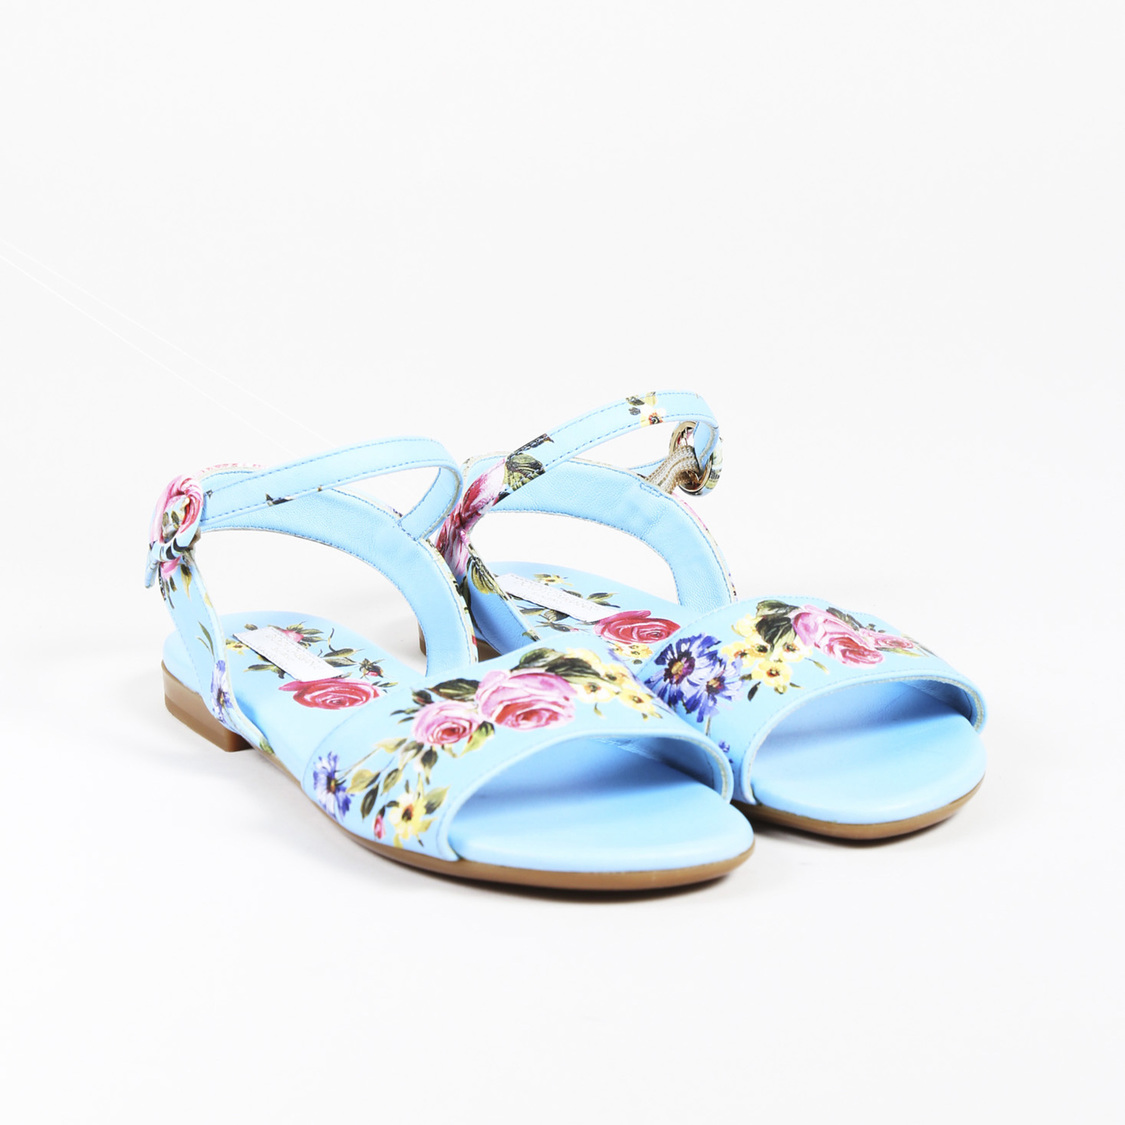 a62afe836d9cf9 Details about KIDS Dolce   Gabbana Blue Multicolor Leather Floral Ankle  Strap Sandals SZ 33